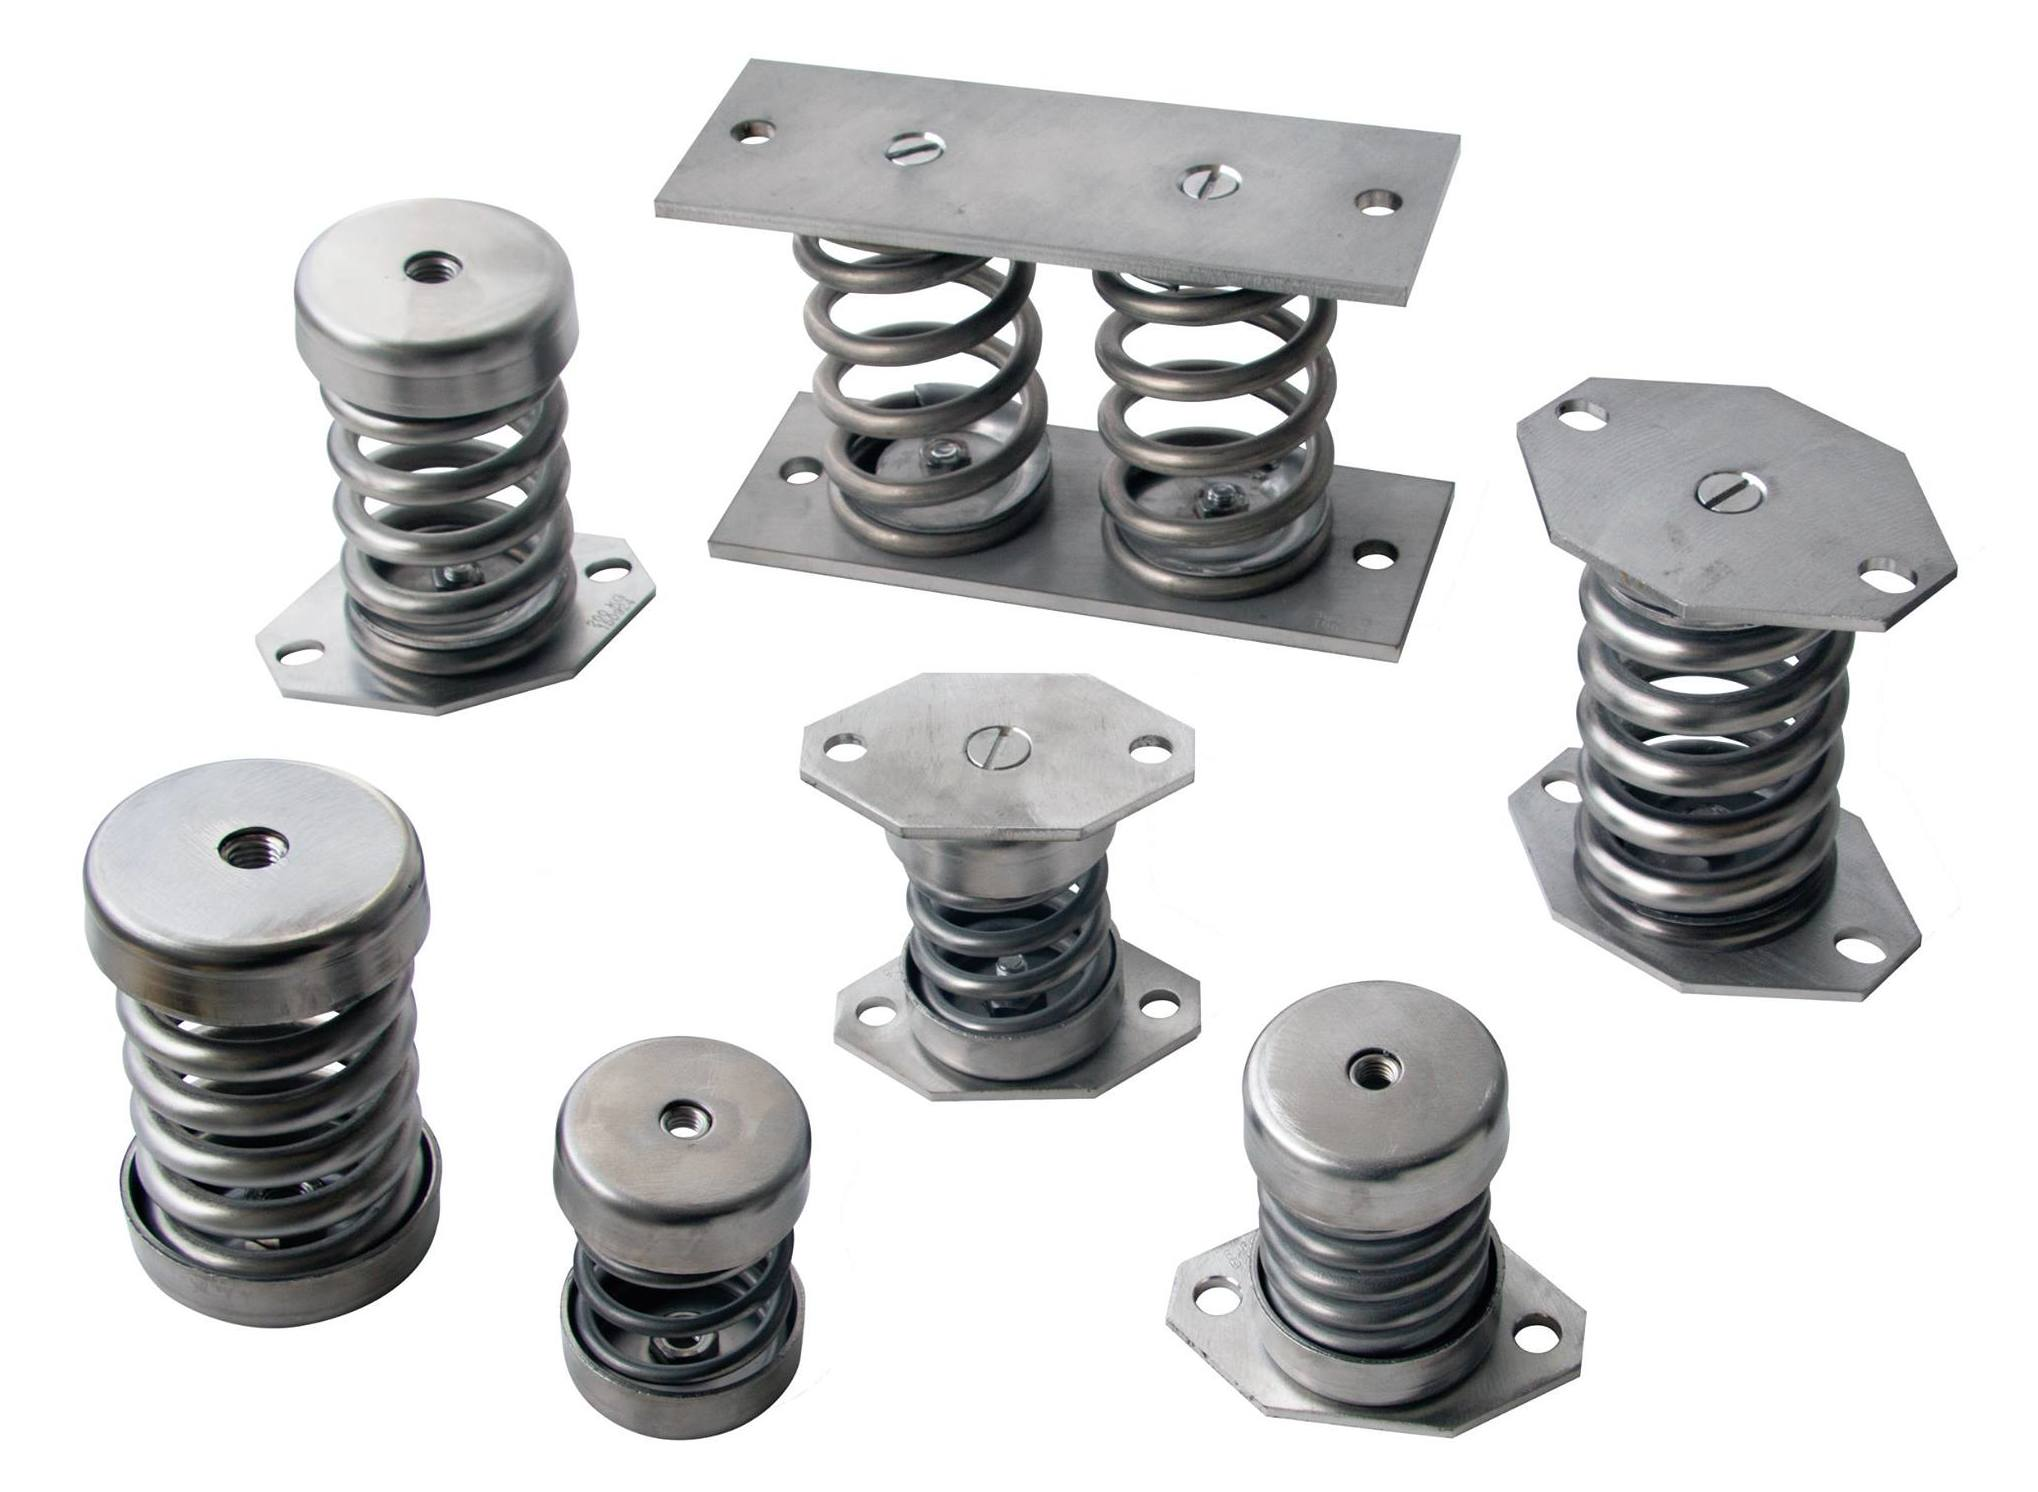 Factory of anti-vibratory brackets in several materials.